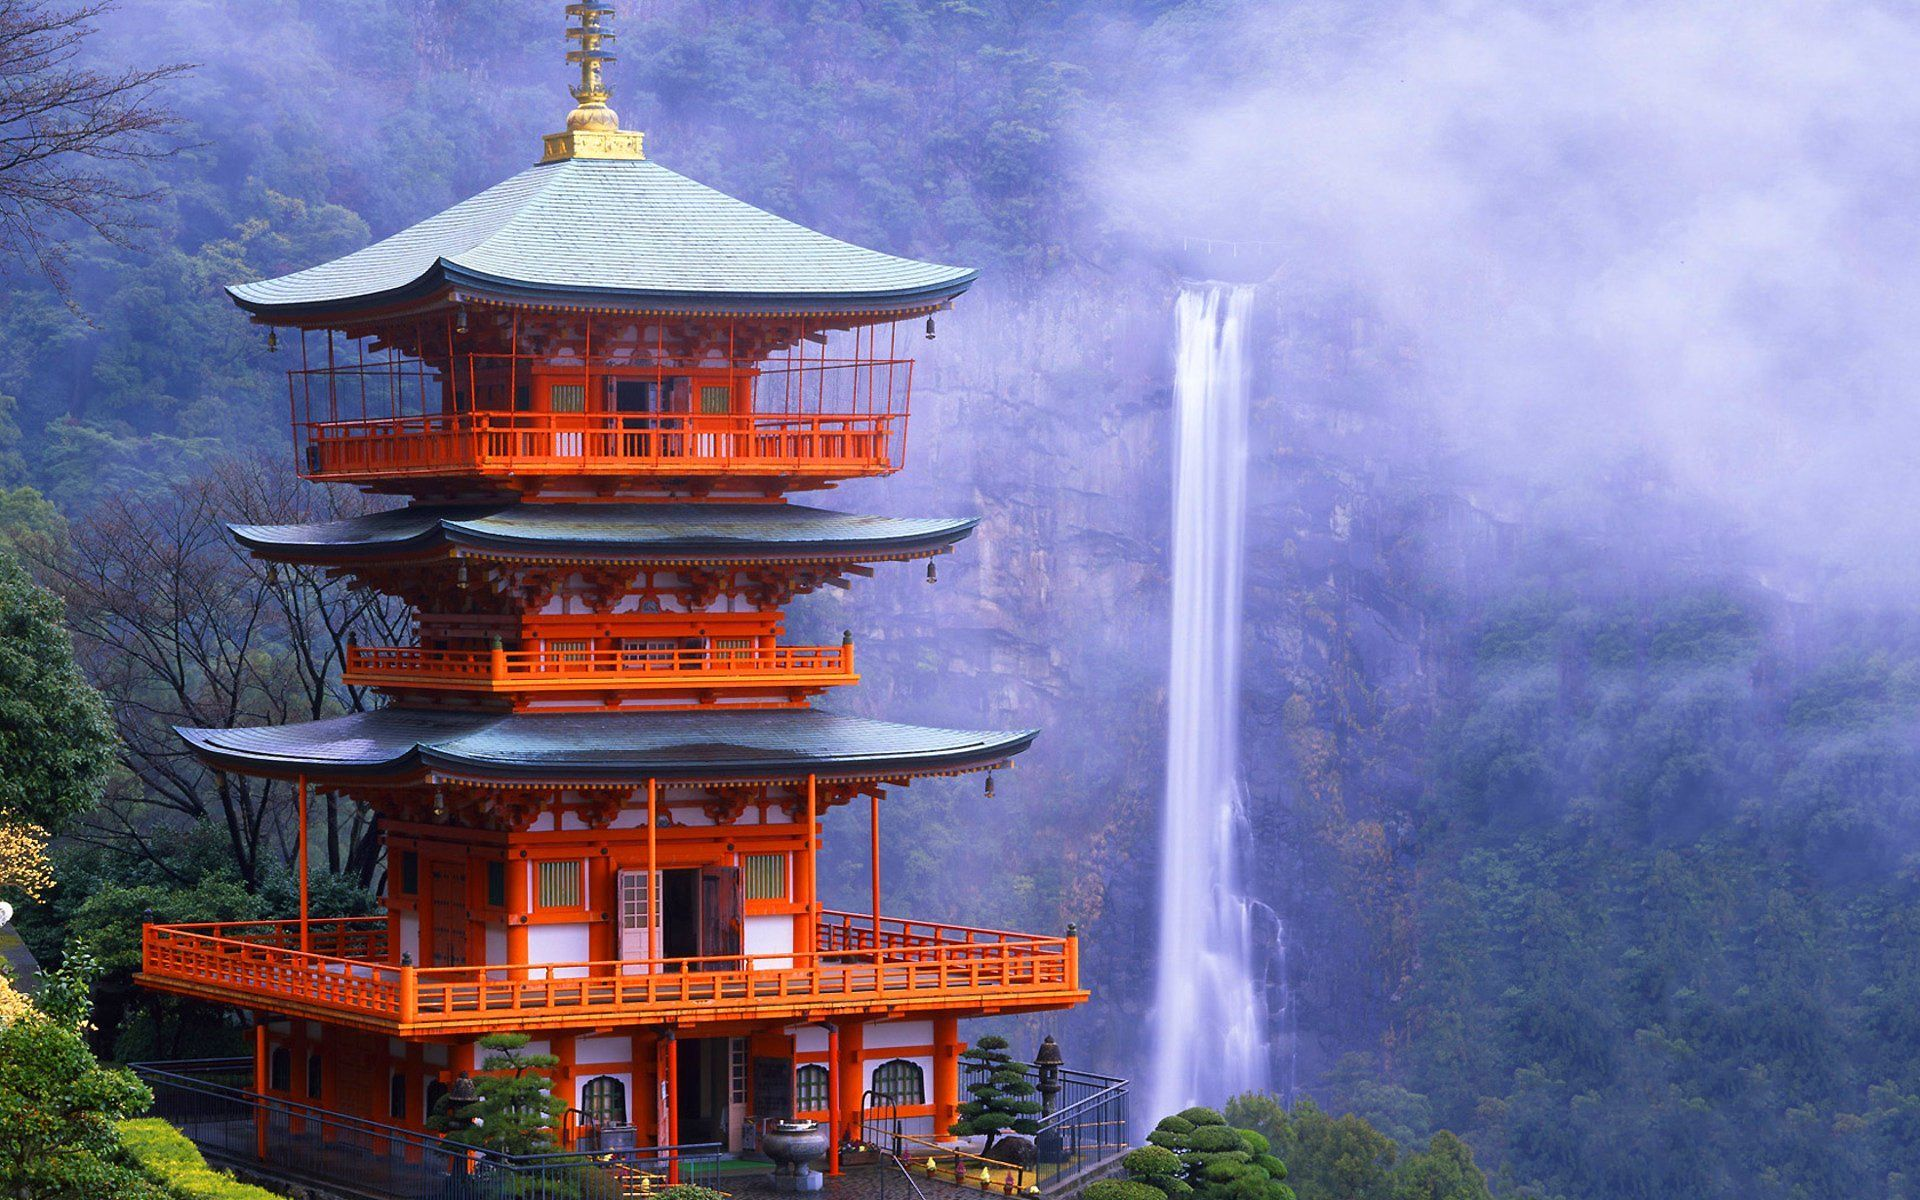 Wallpaper China Hd Japanese Architecture Japanese Temple Hd Anime Wallpapers